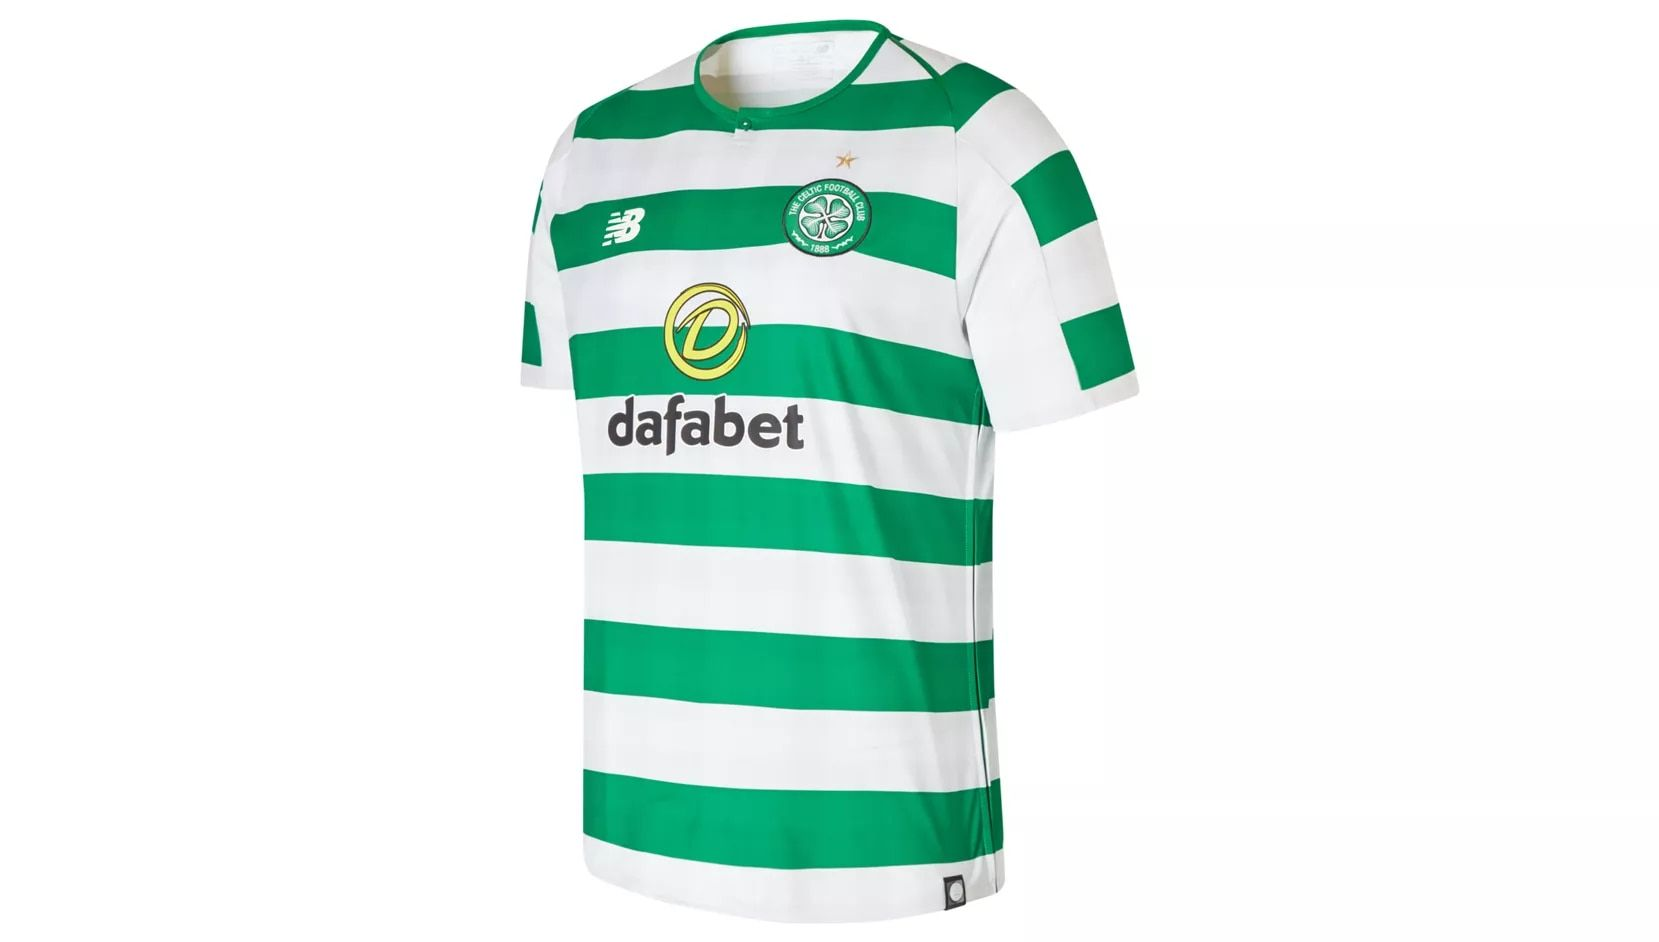 a1d6bdc486 Celtic FC Home Short Sleeve Jersey in 2019 | Threads and Creps ...